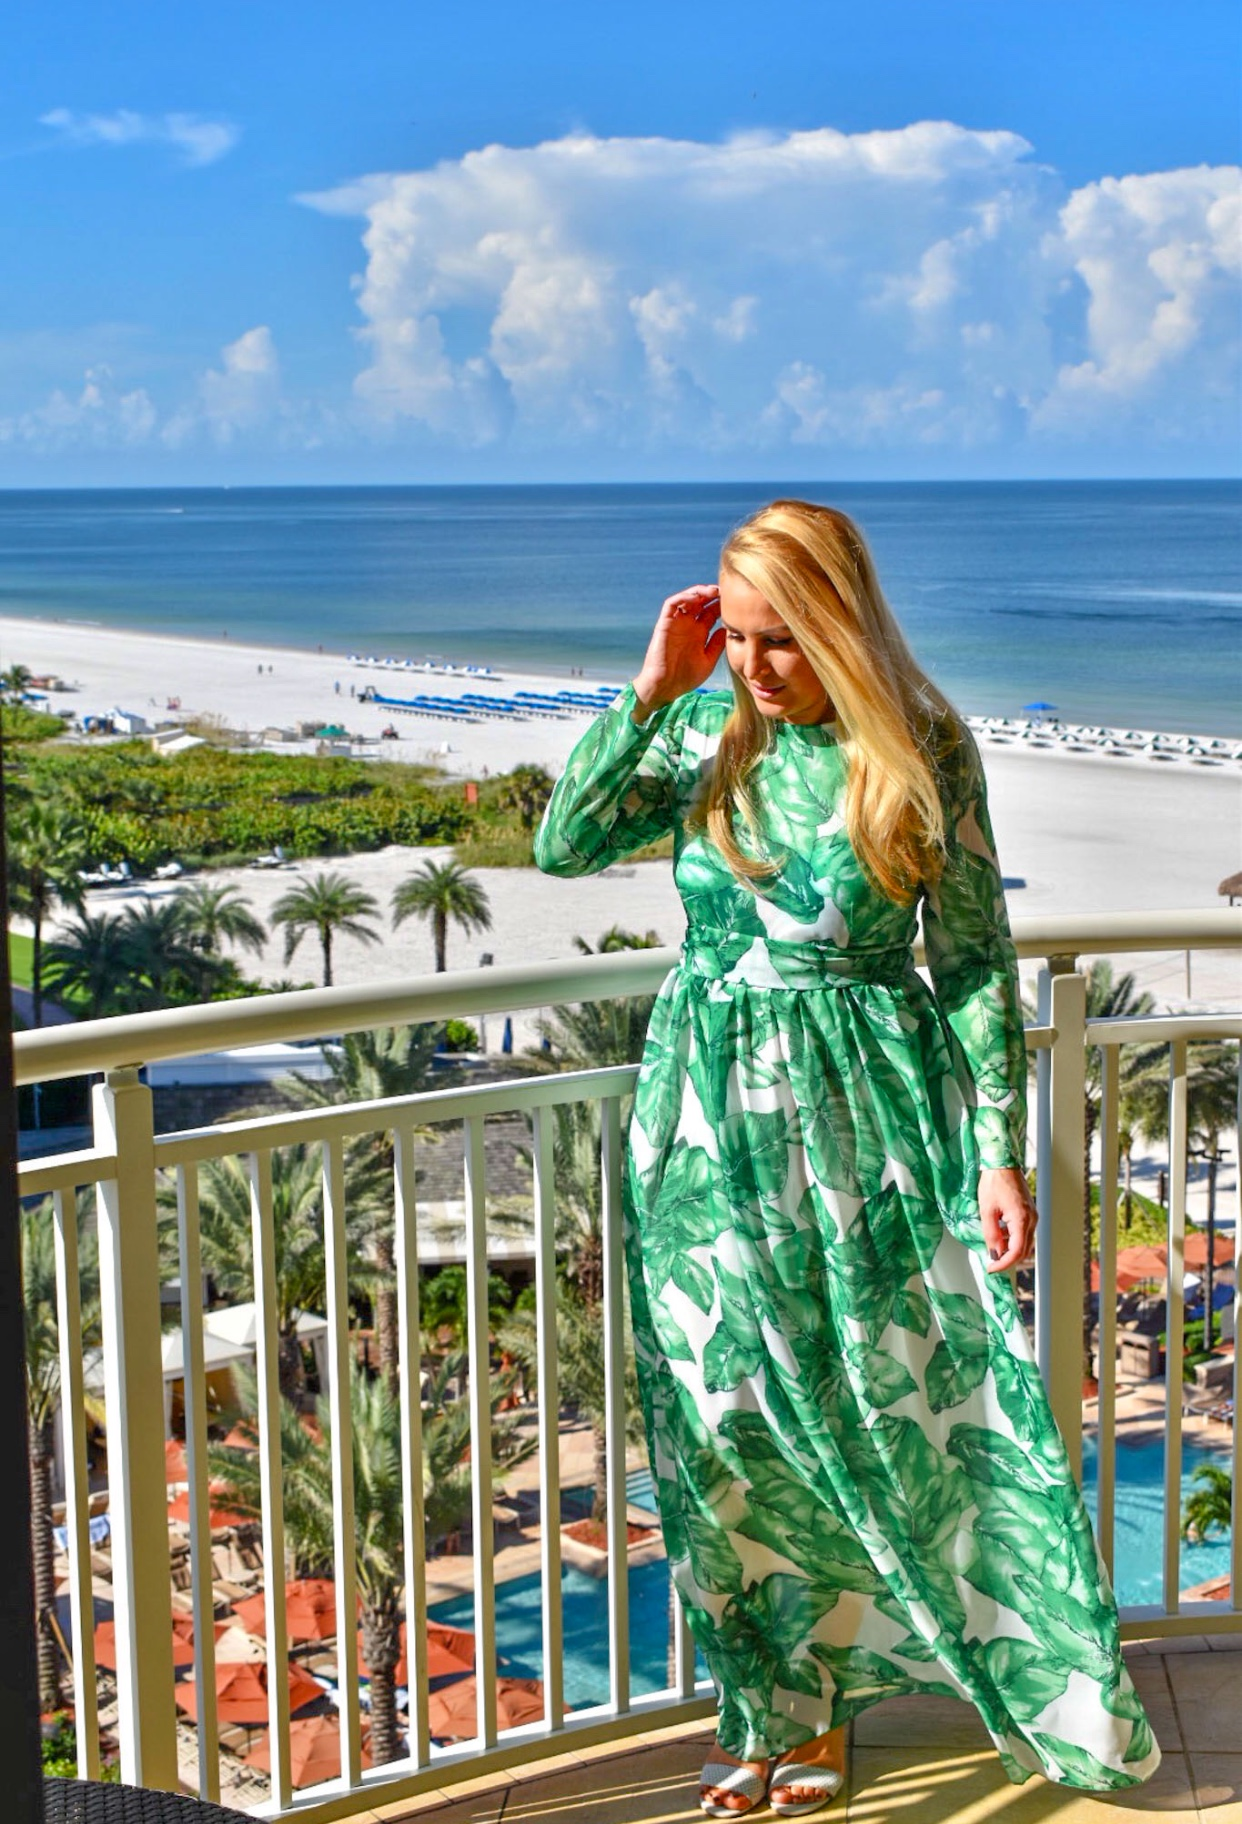 Palm Print, Palm leaf print dress, Shein Palm Leaf print dress, Green and White Dress in Marco Island Florida